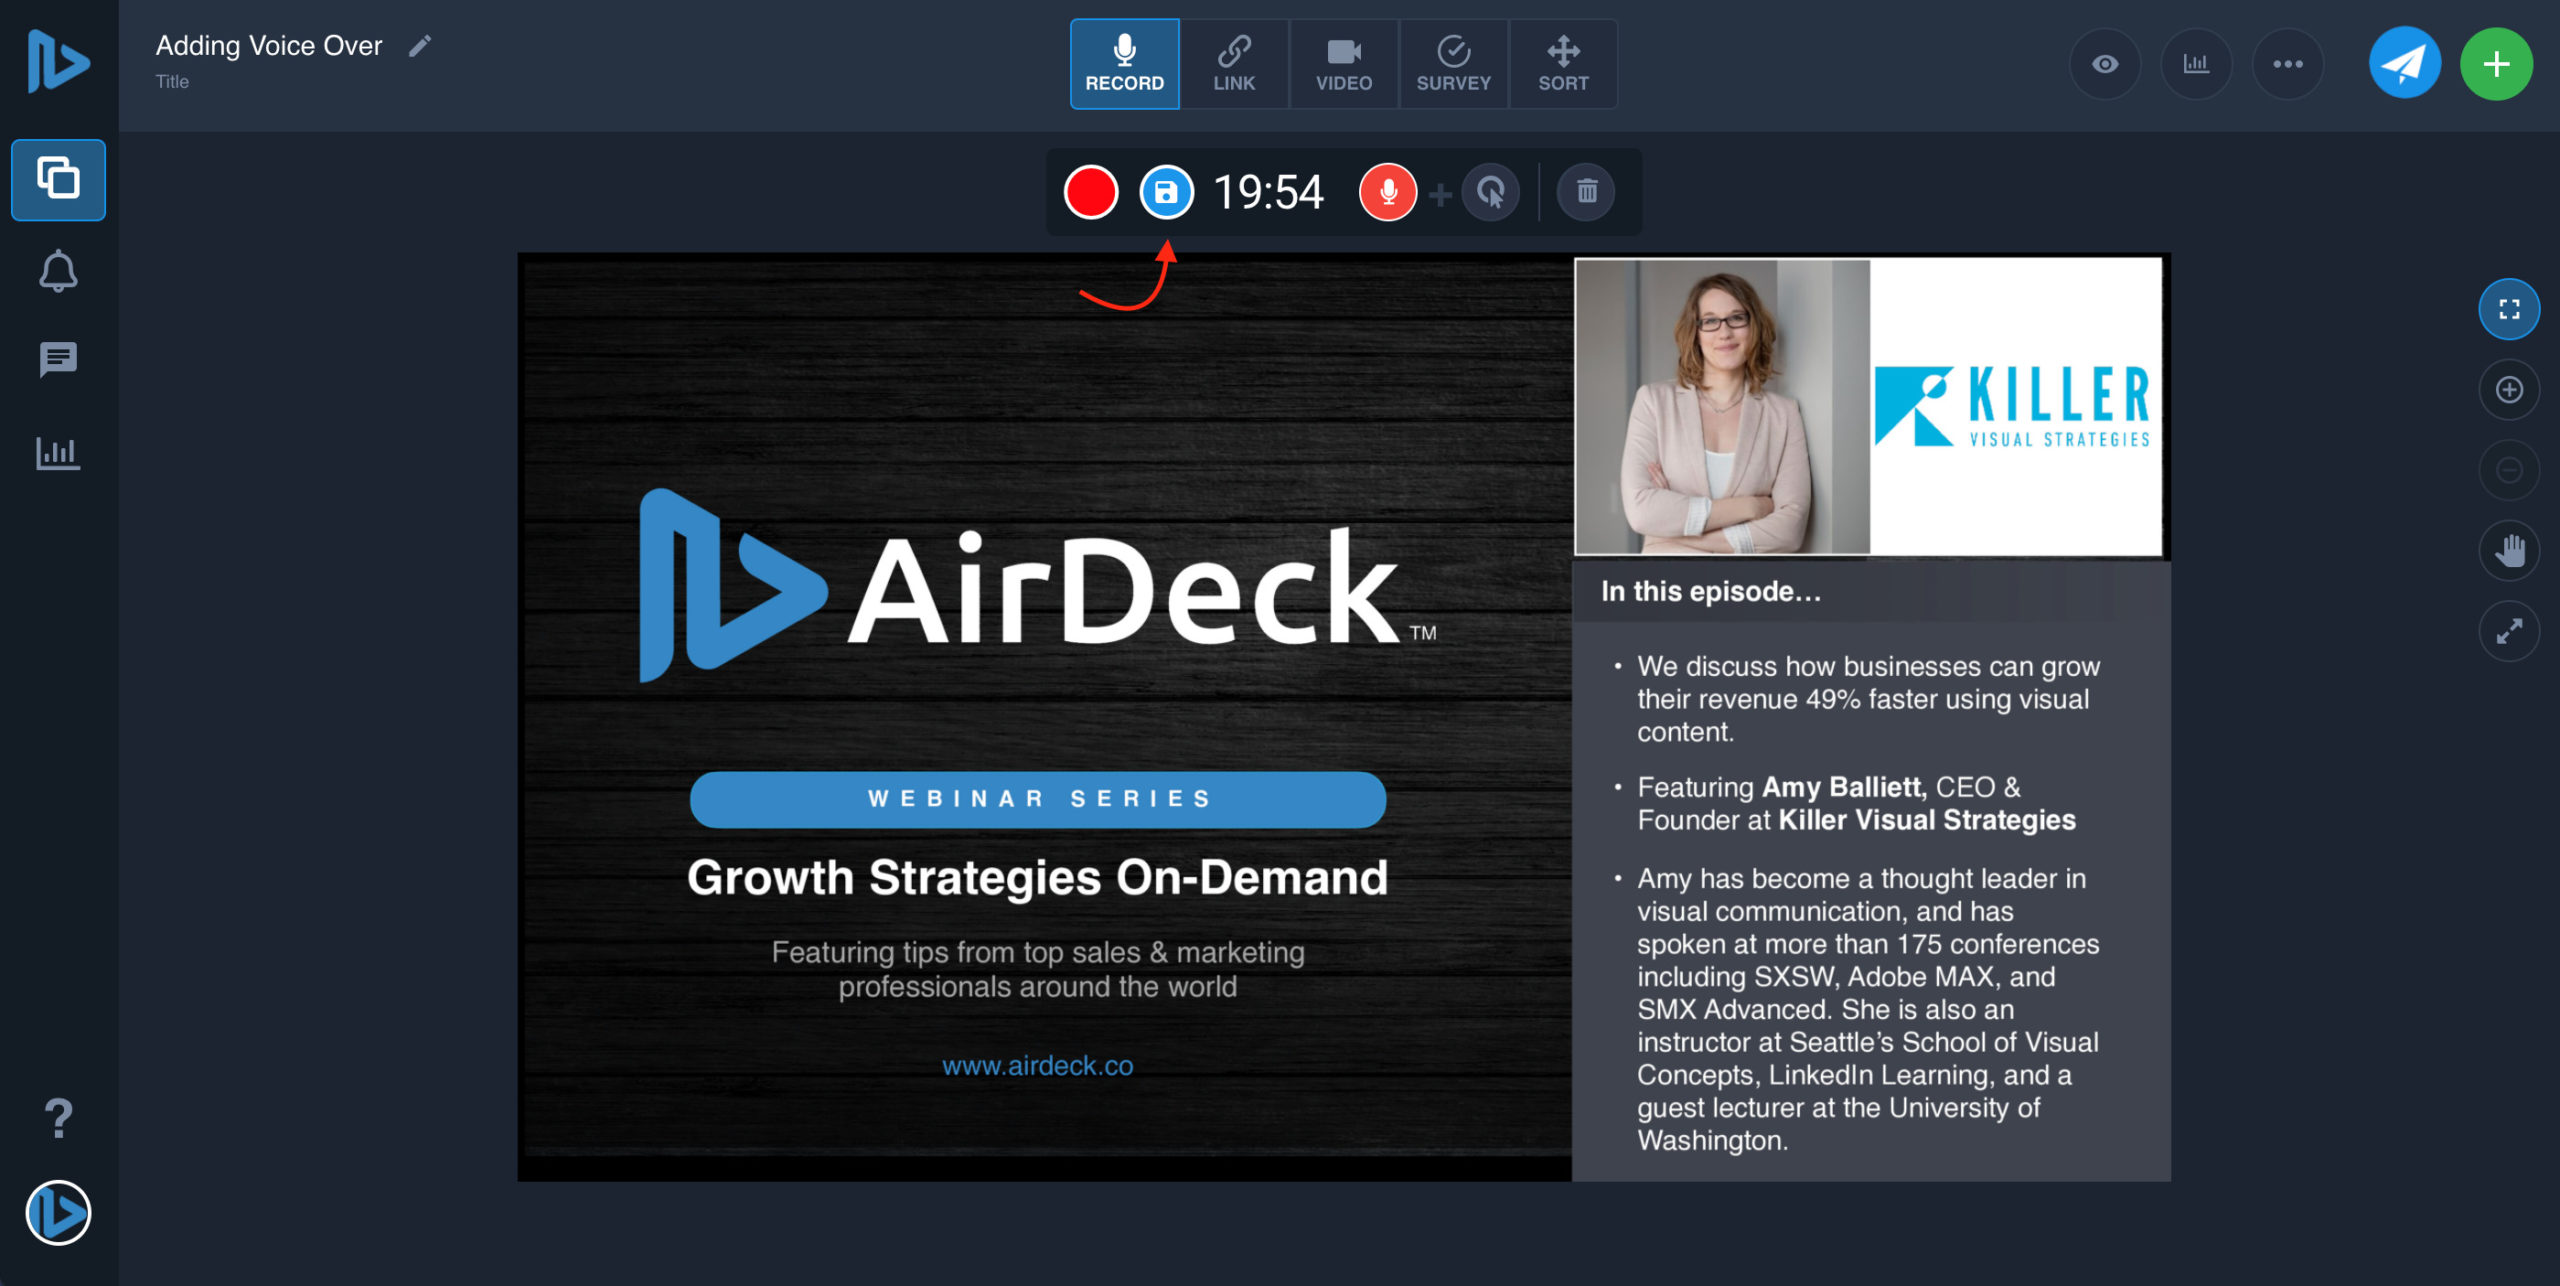 Arrow pointing to save button on AirDeck user interface